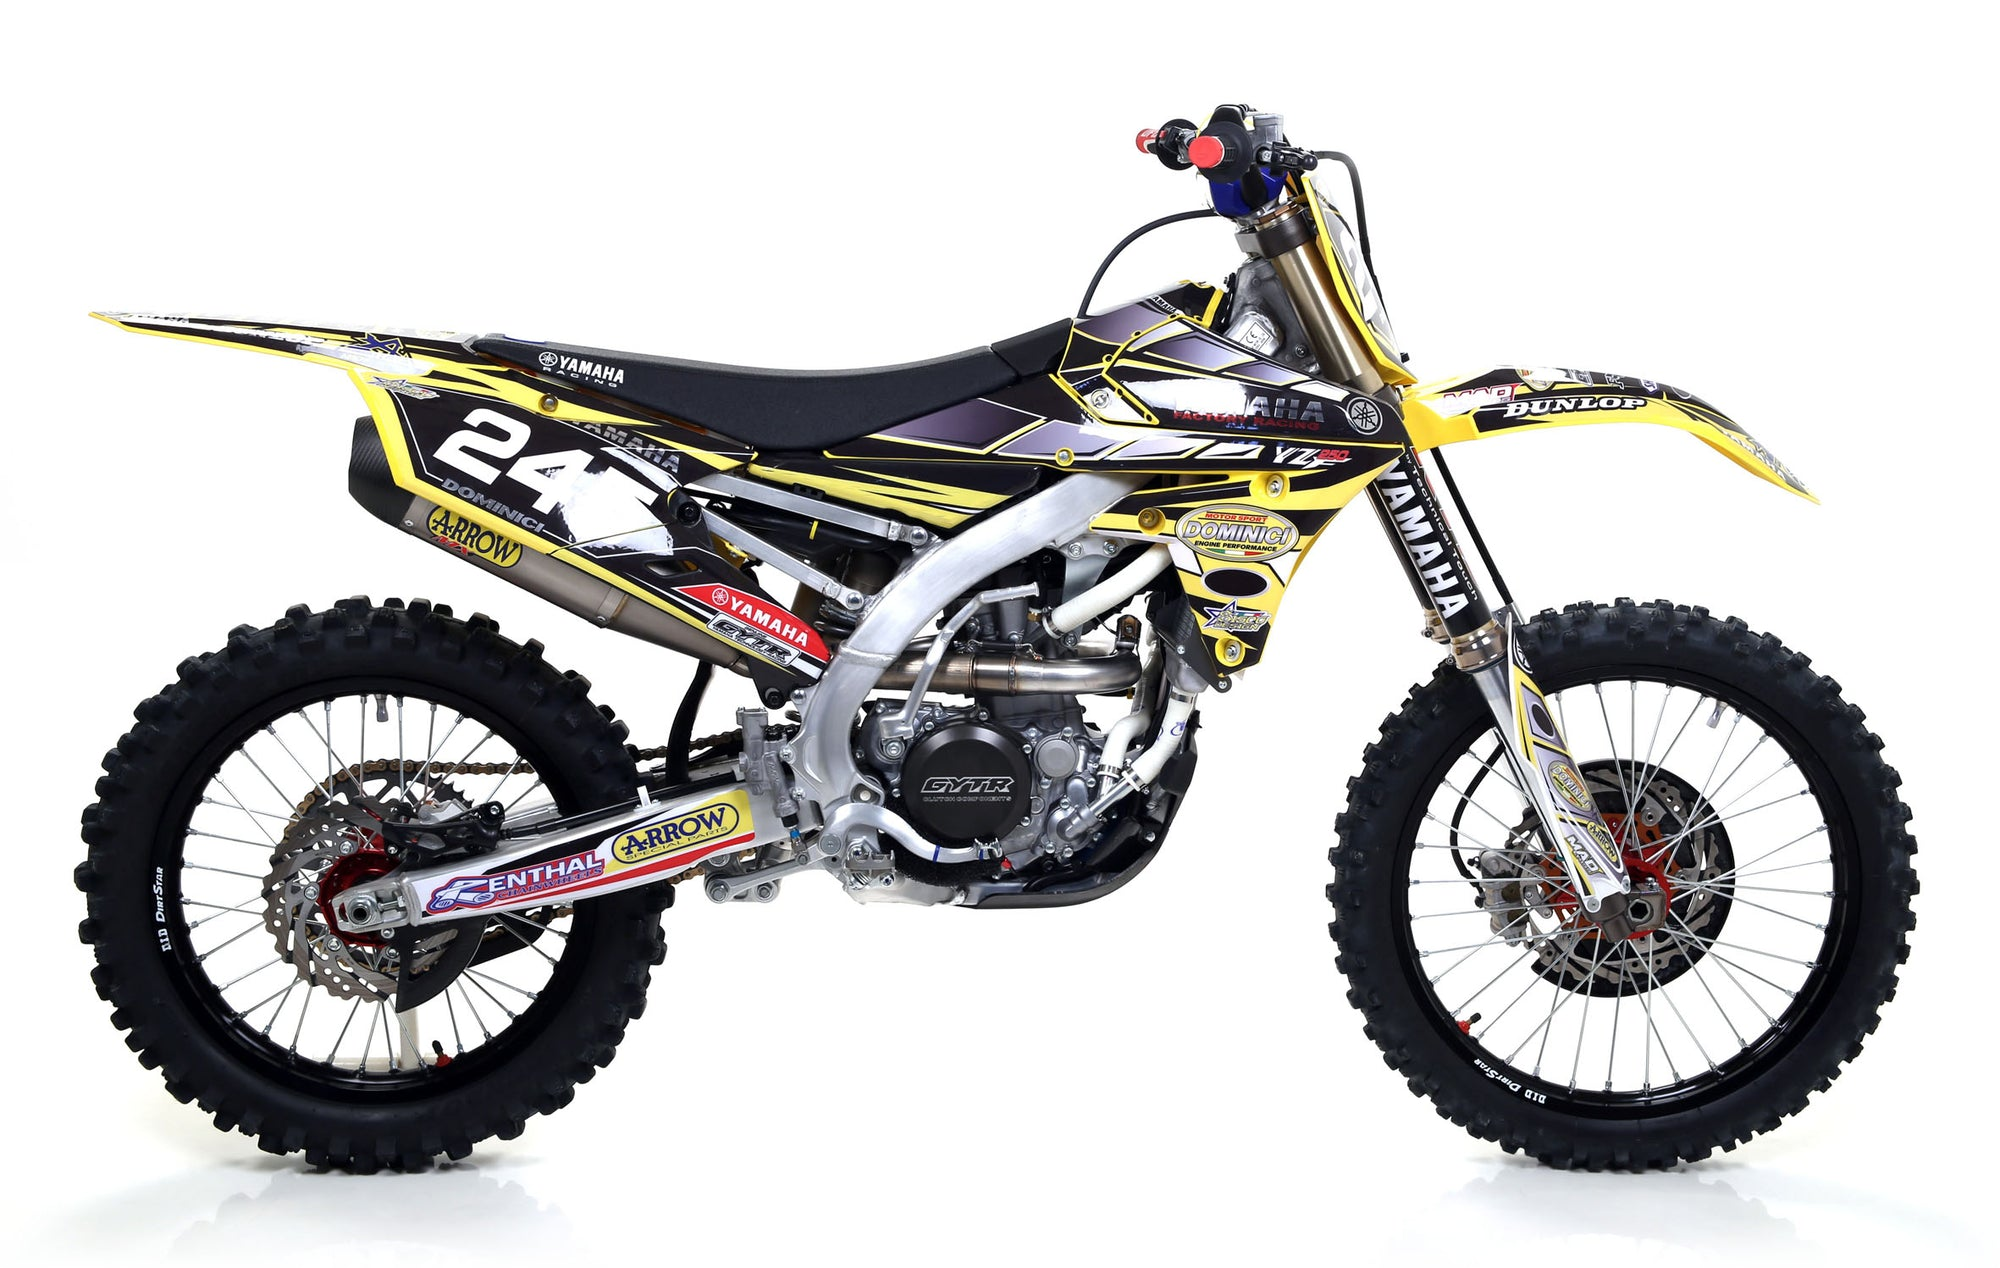 MX Comp - Yamaha, Exhaust, Arrow - Averys Motorcycles